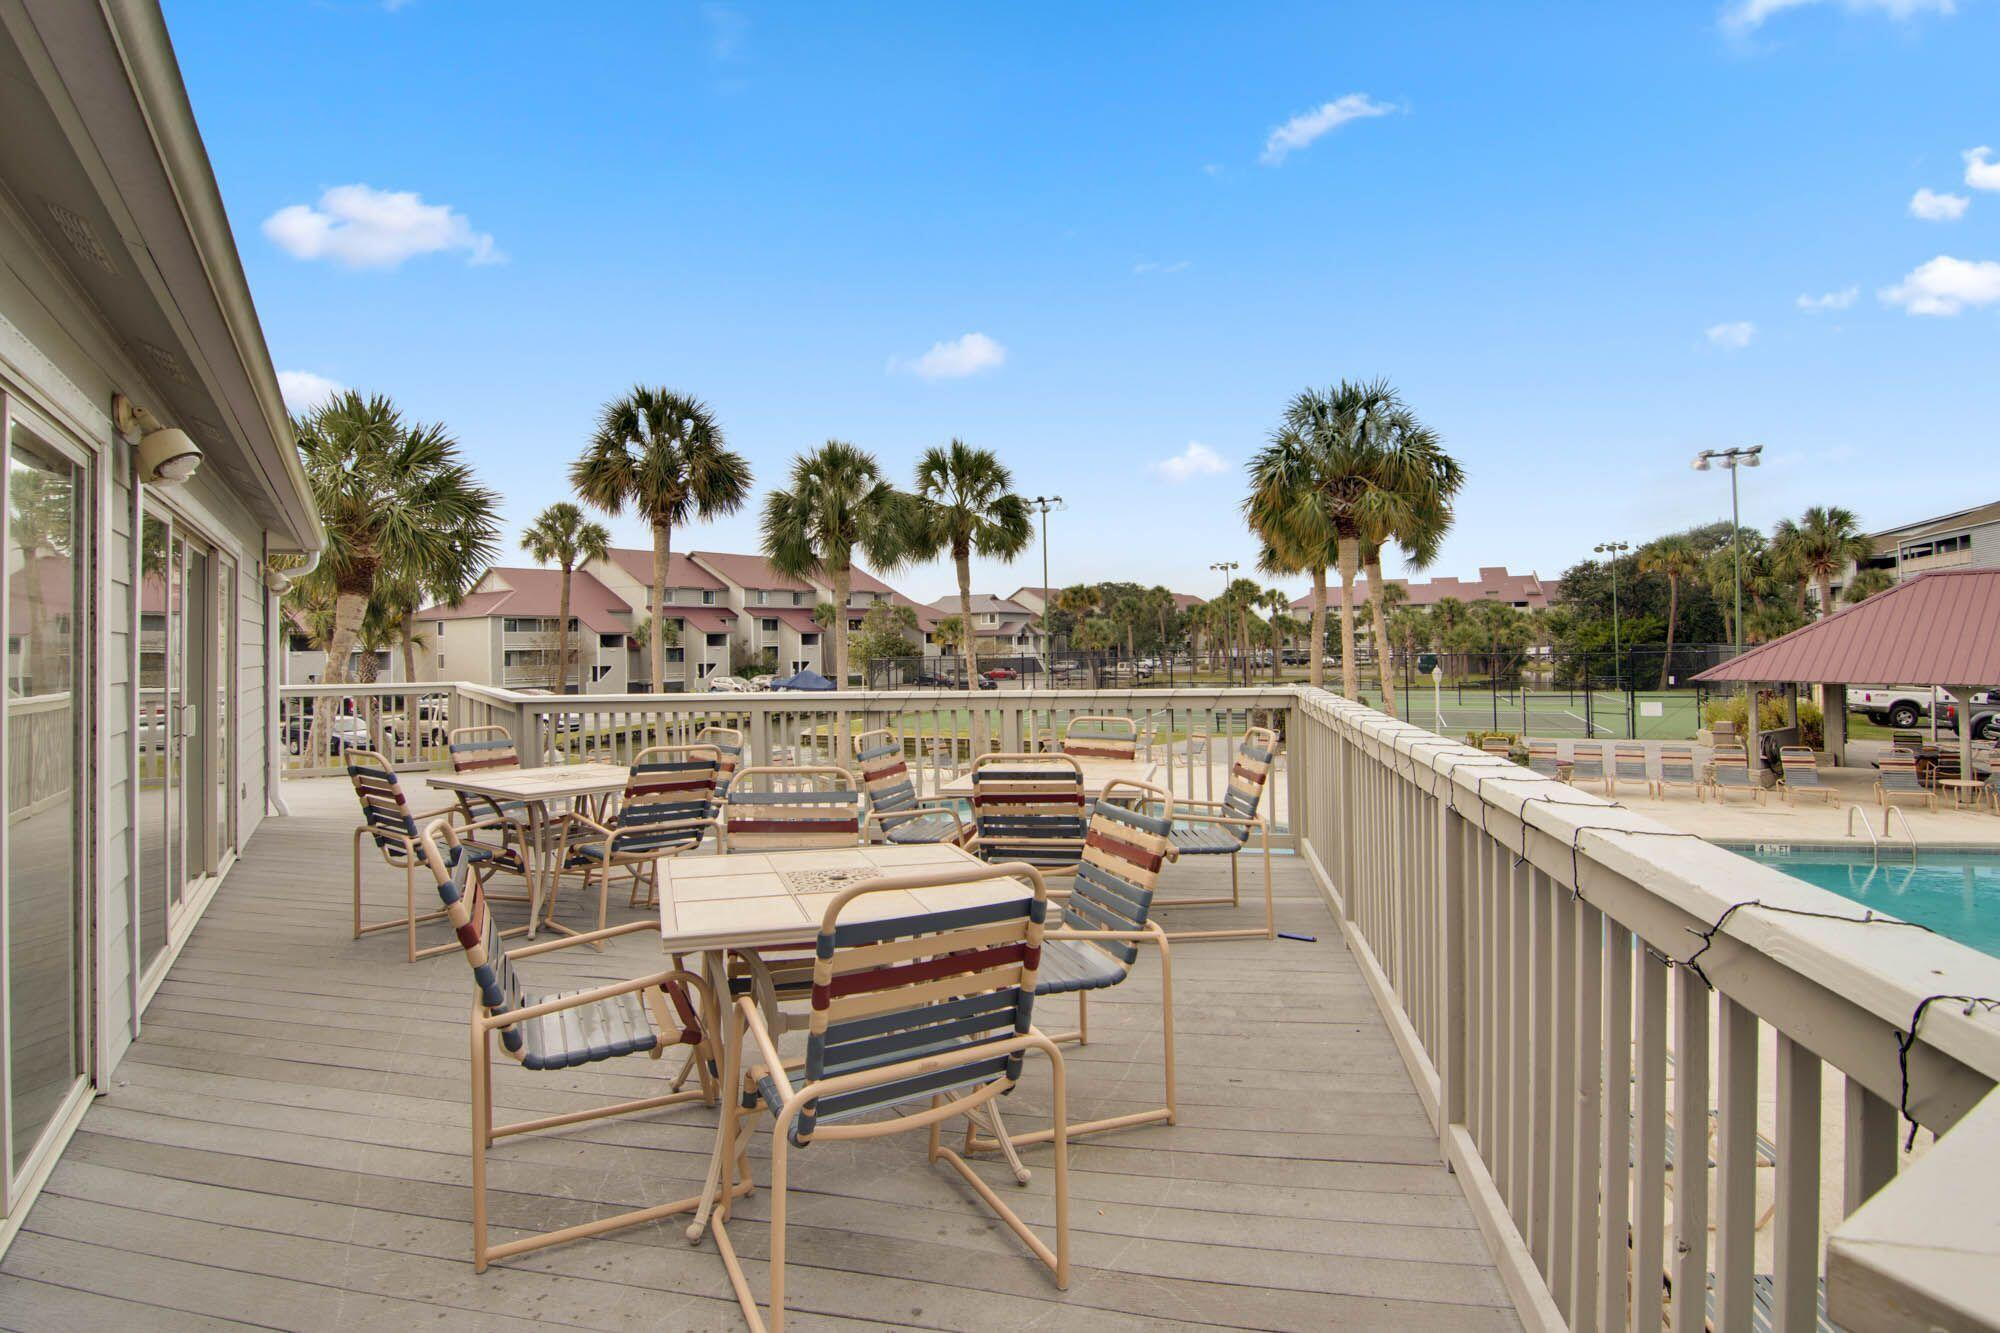 Mariners Cay Homes For Sale - 51 Mariners Cay, Folly Beach, SC - 26